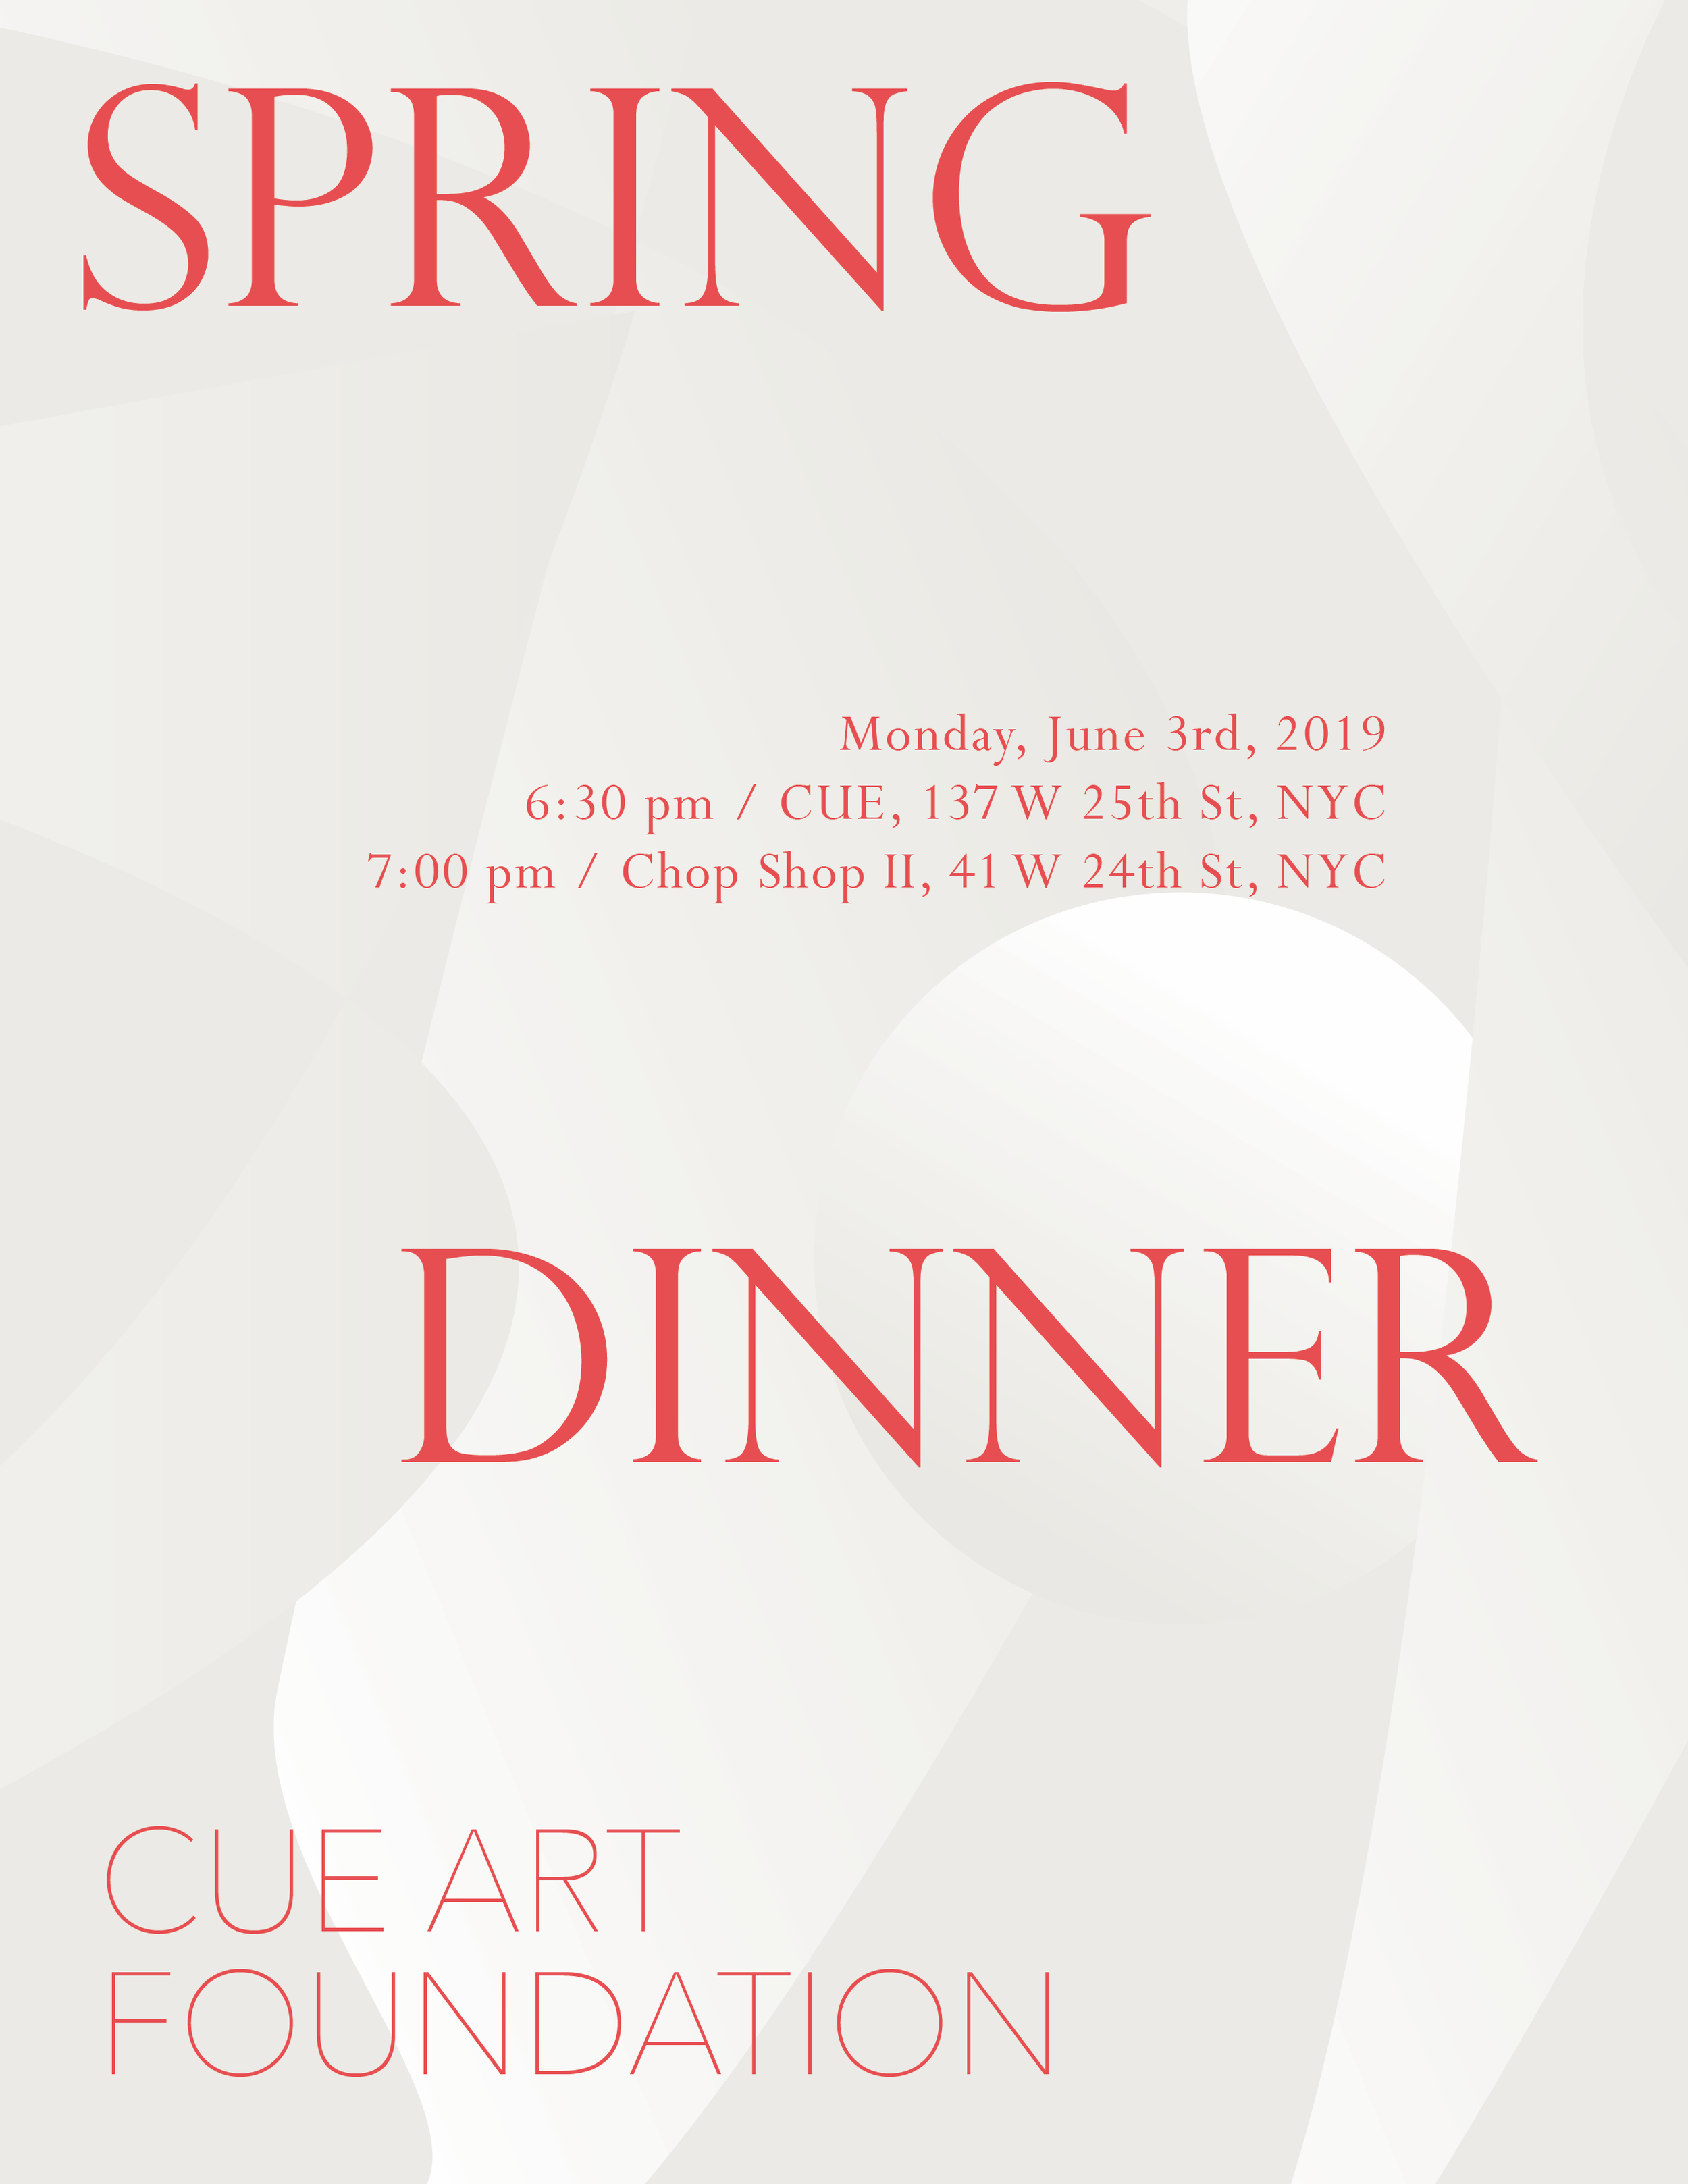 Spring_Dinner_graphics_2019_UPDATED.png